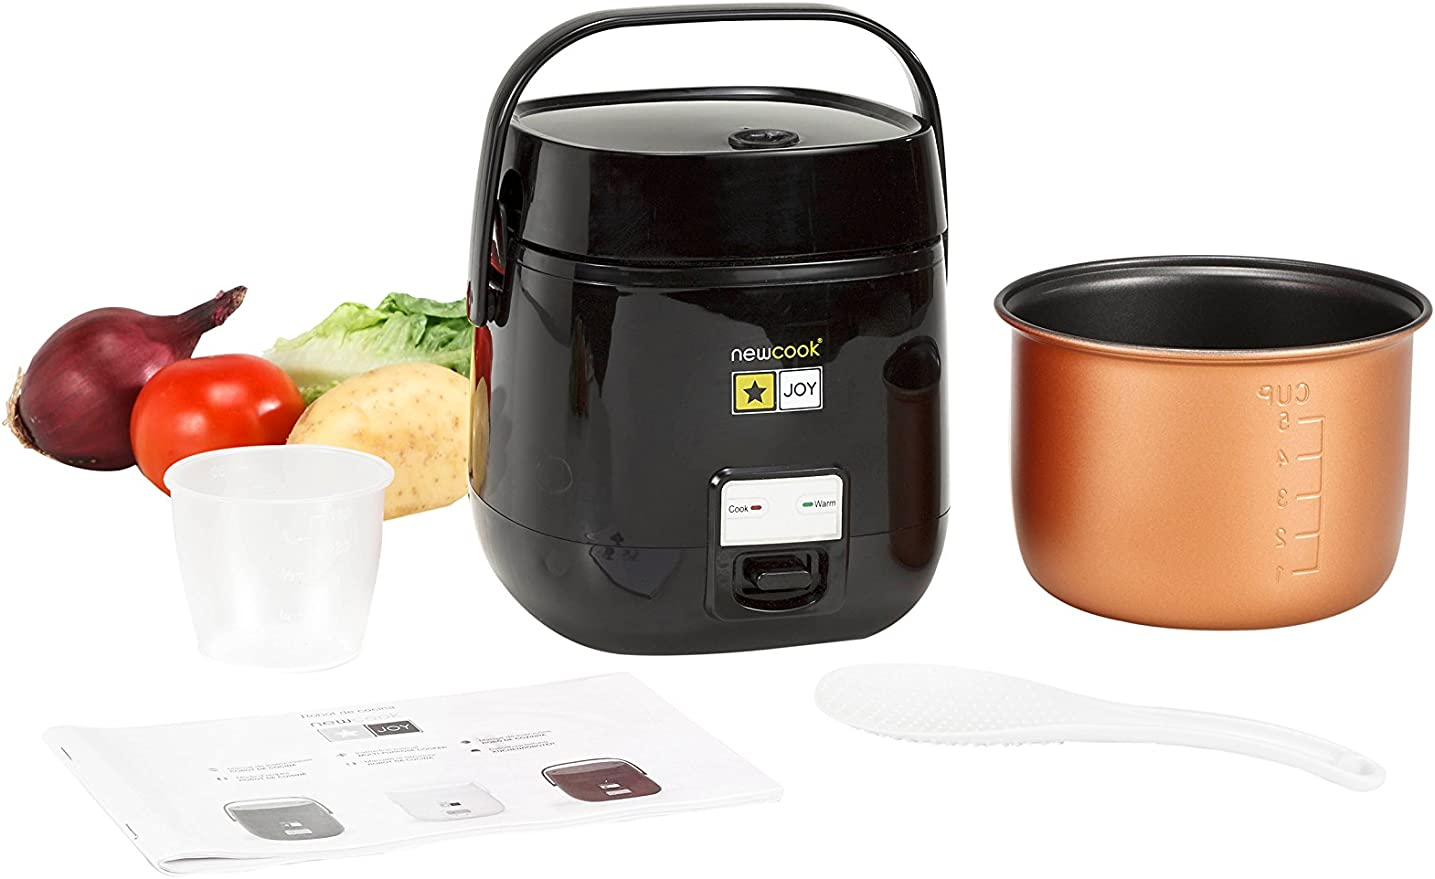 NEWCOOK Robot De Cocina NL7273 Joy: Amazon.es